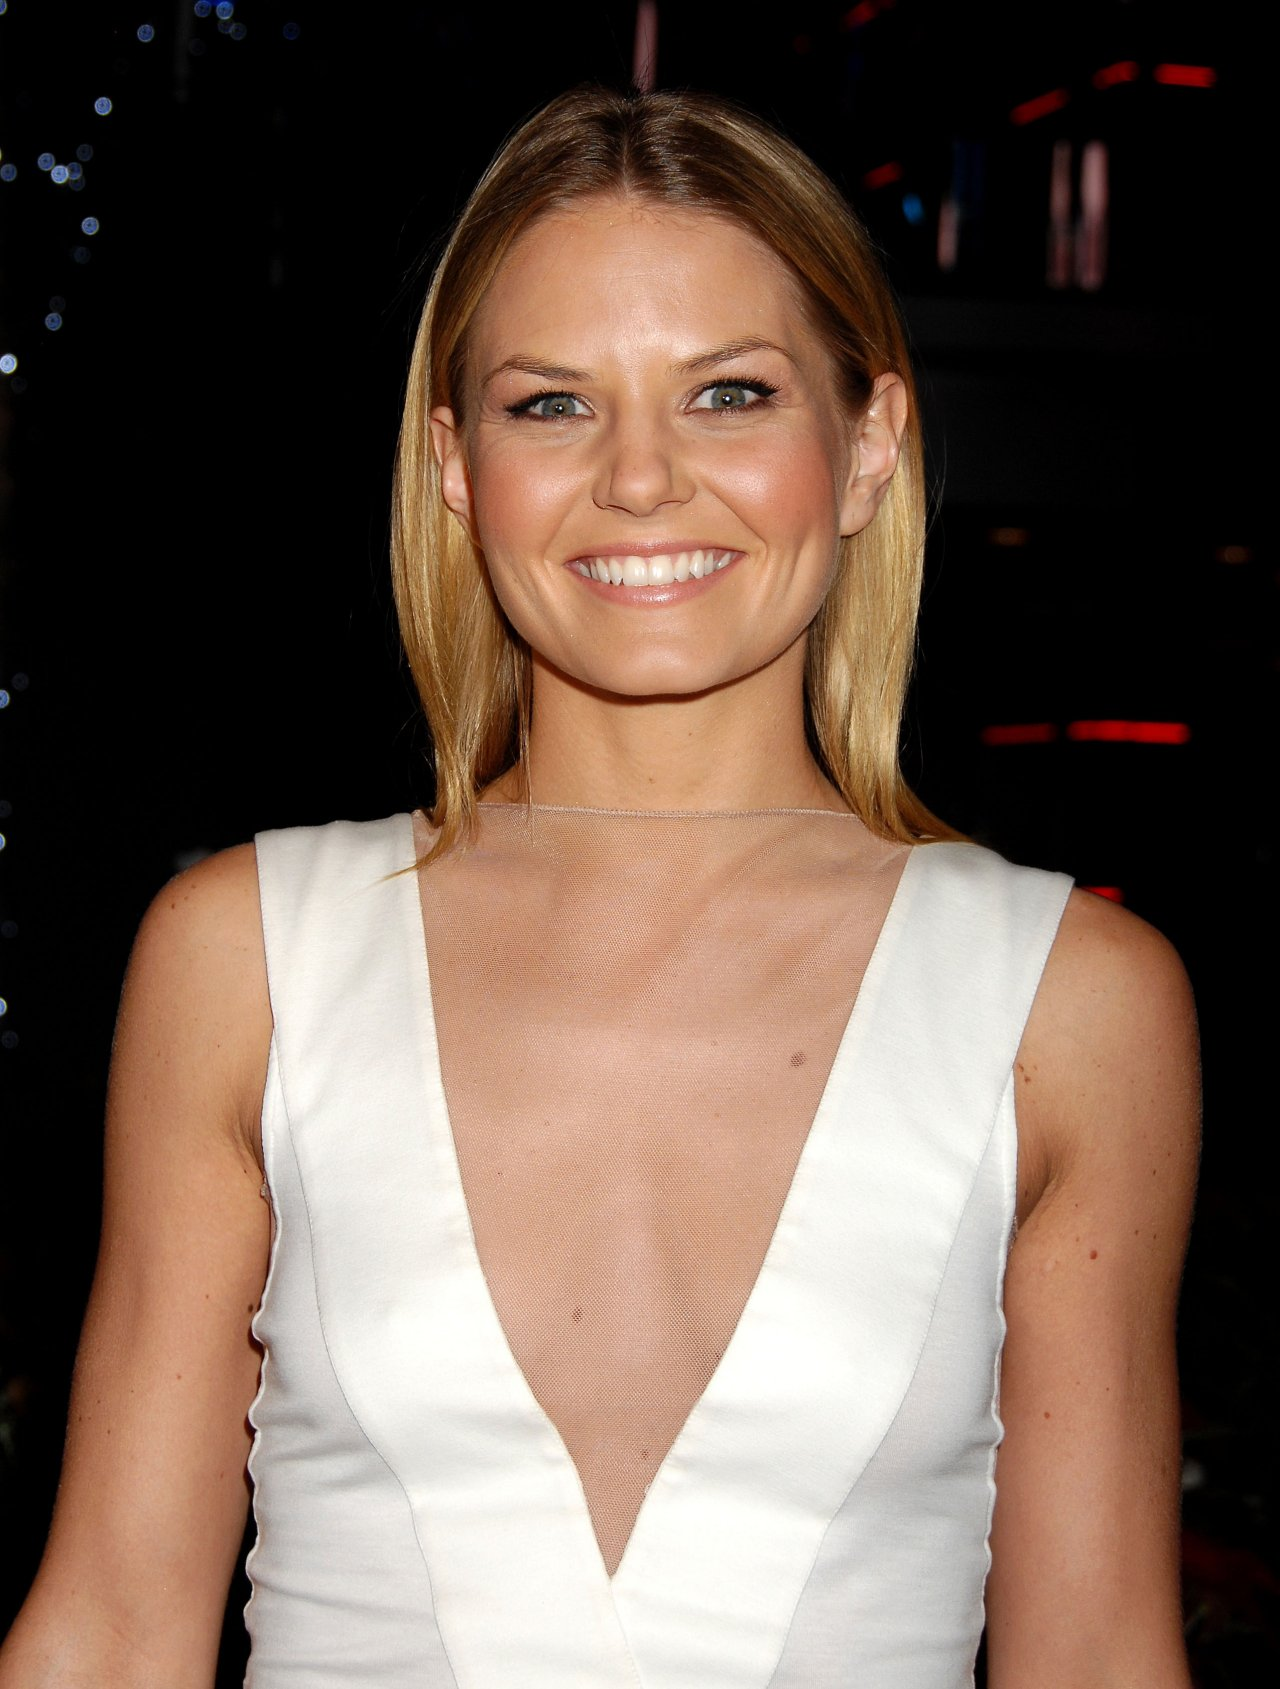 Photo Jennifer Morrison - Wallpapers with a celebrity ...: http://ua-dreams.com/celebrity/jennifer-morrison/v5gp.html